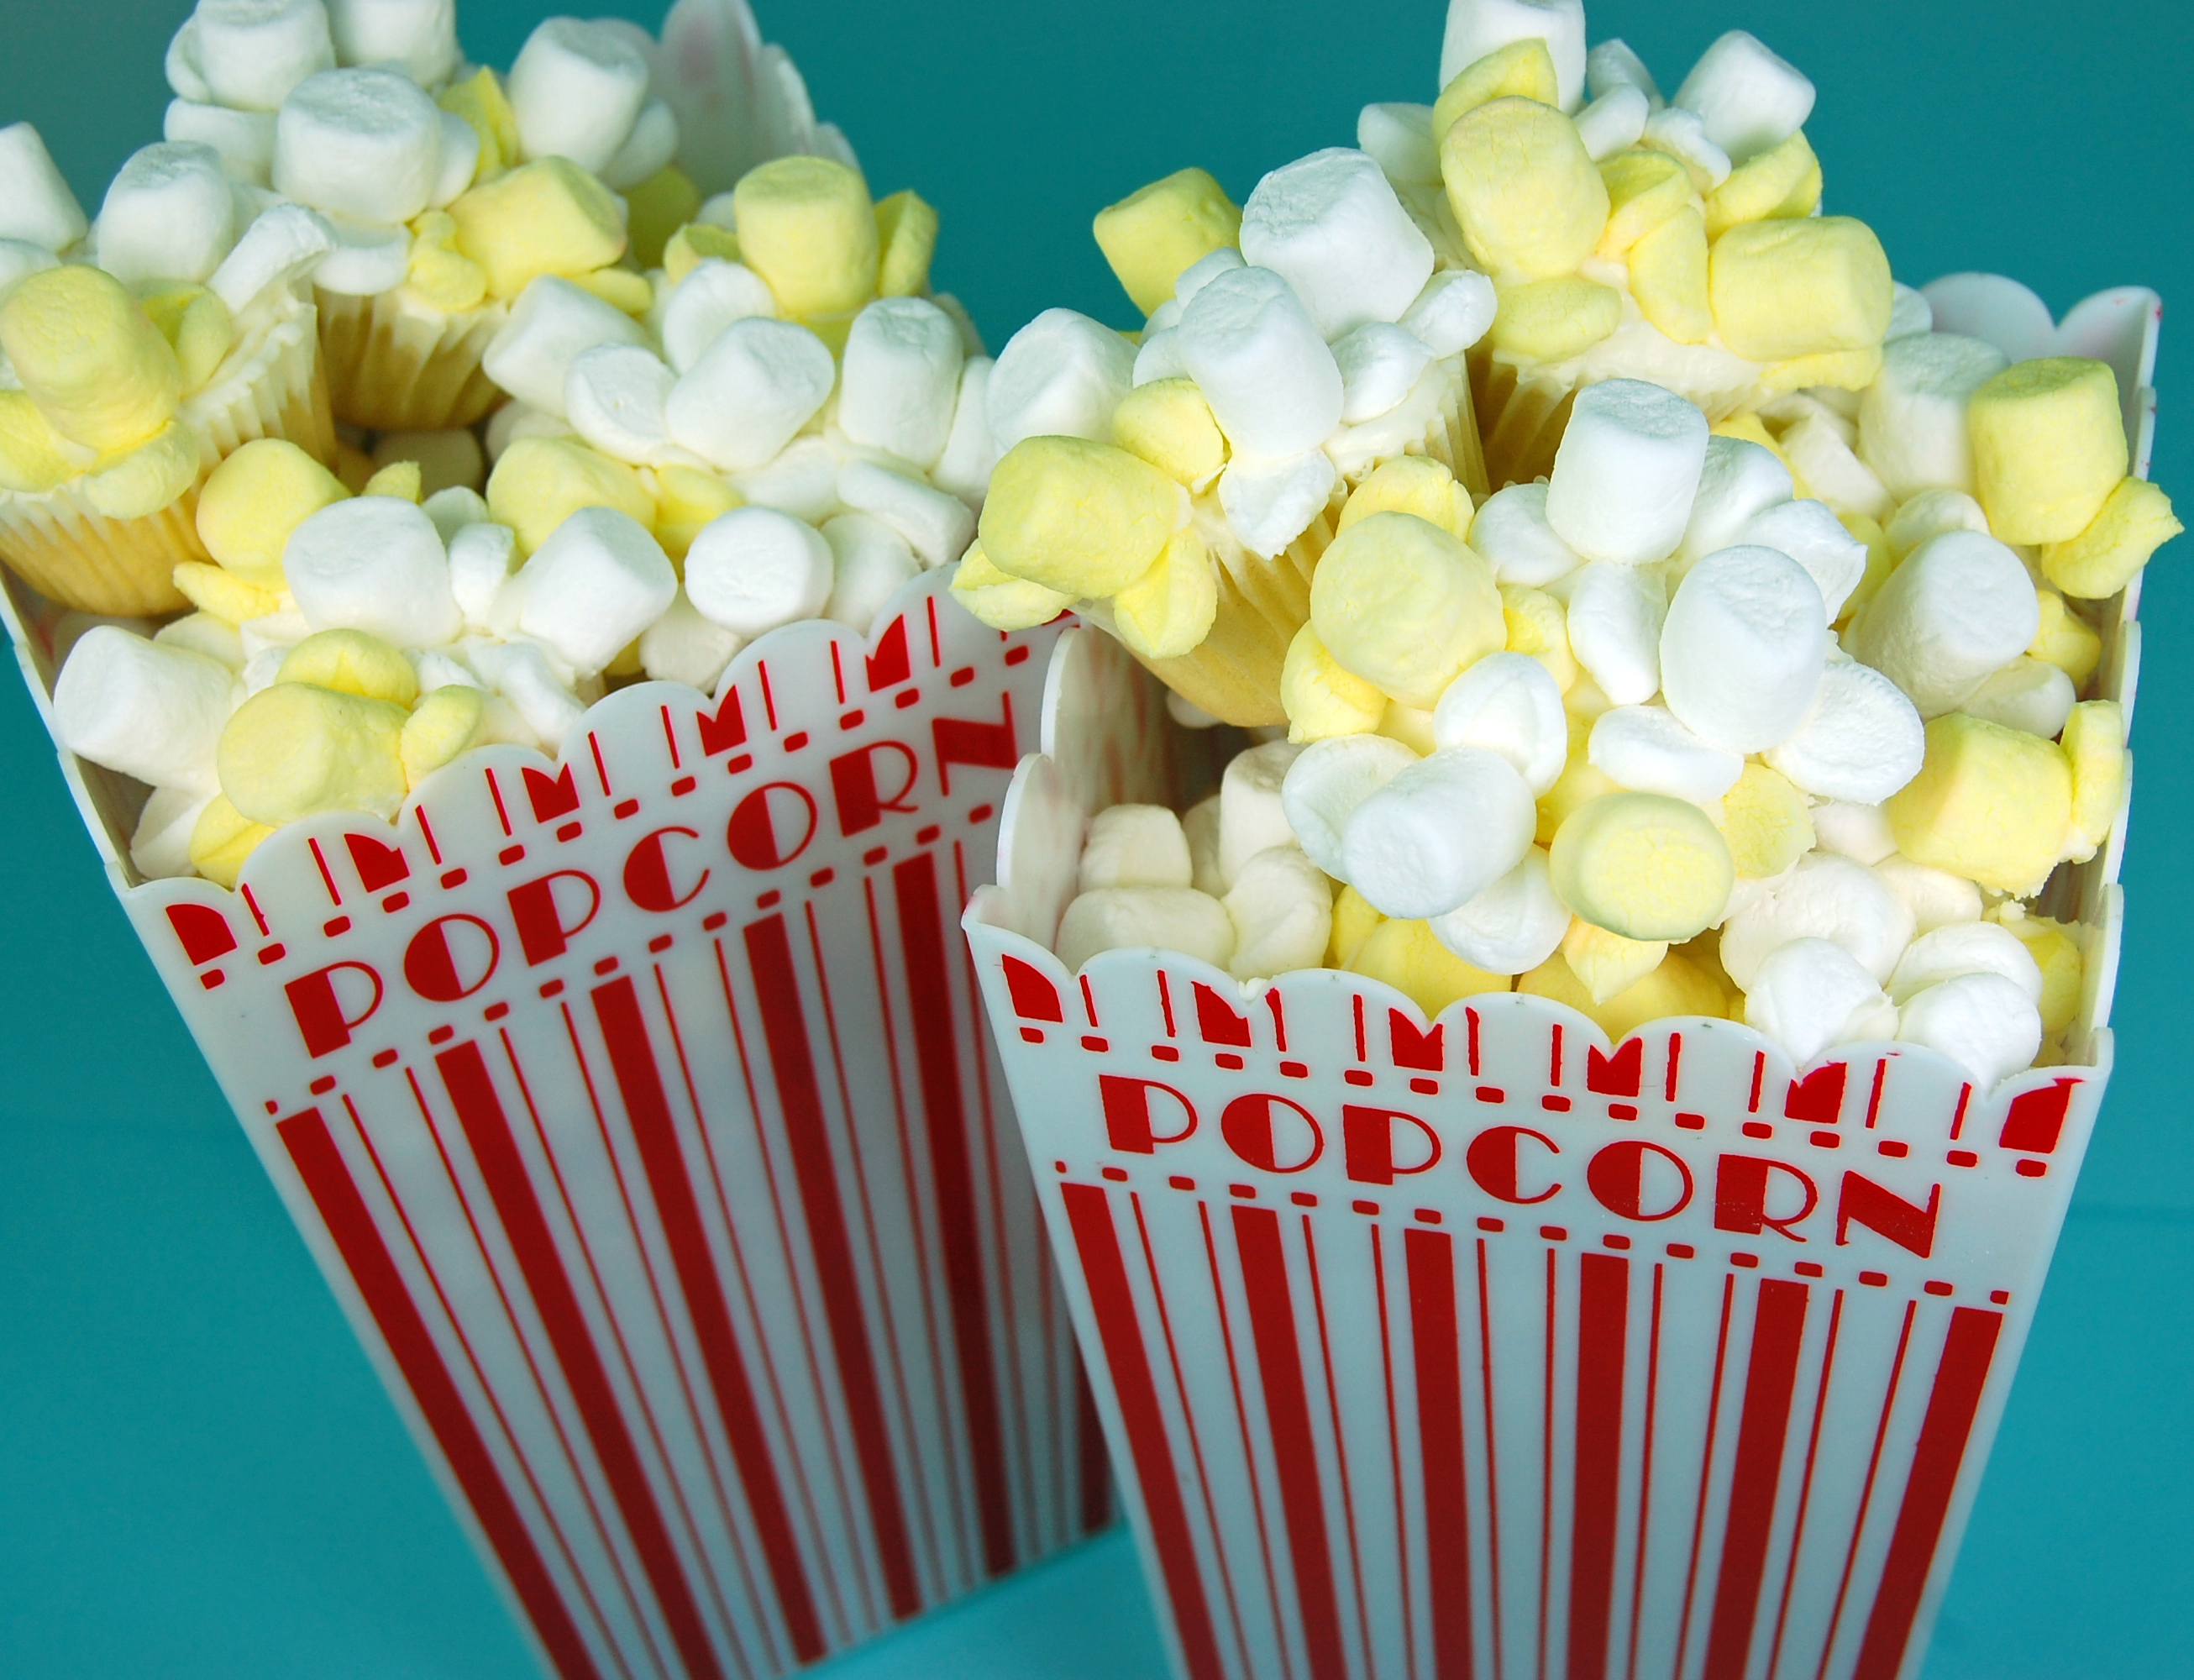 buckets theater popcorn oz tubs count ounce movie com ip walmart tub northern great